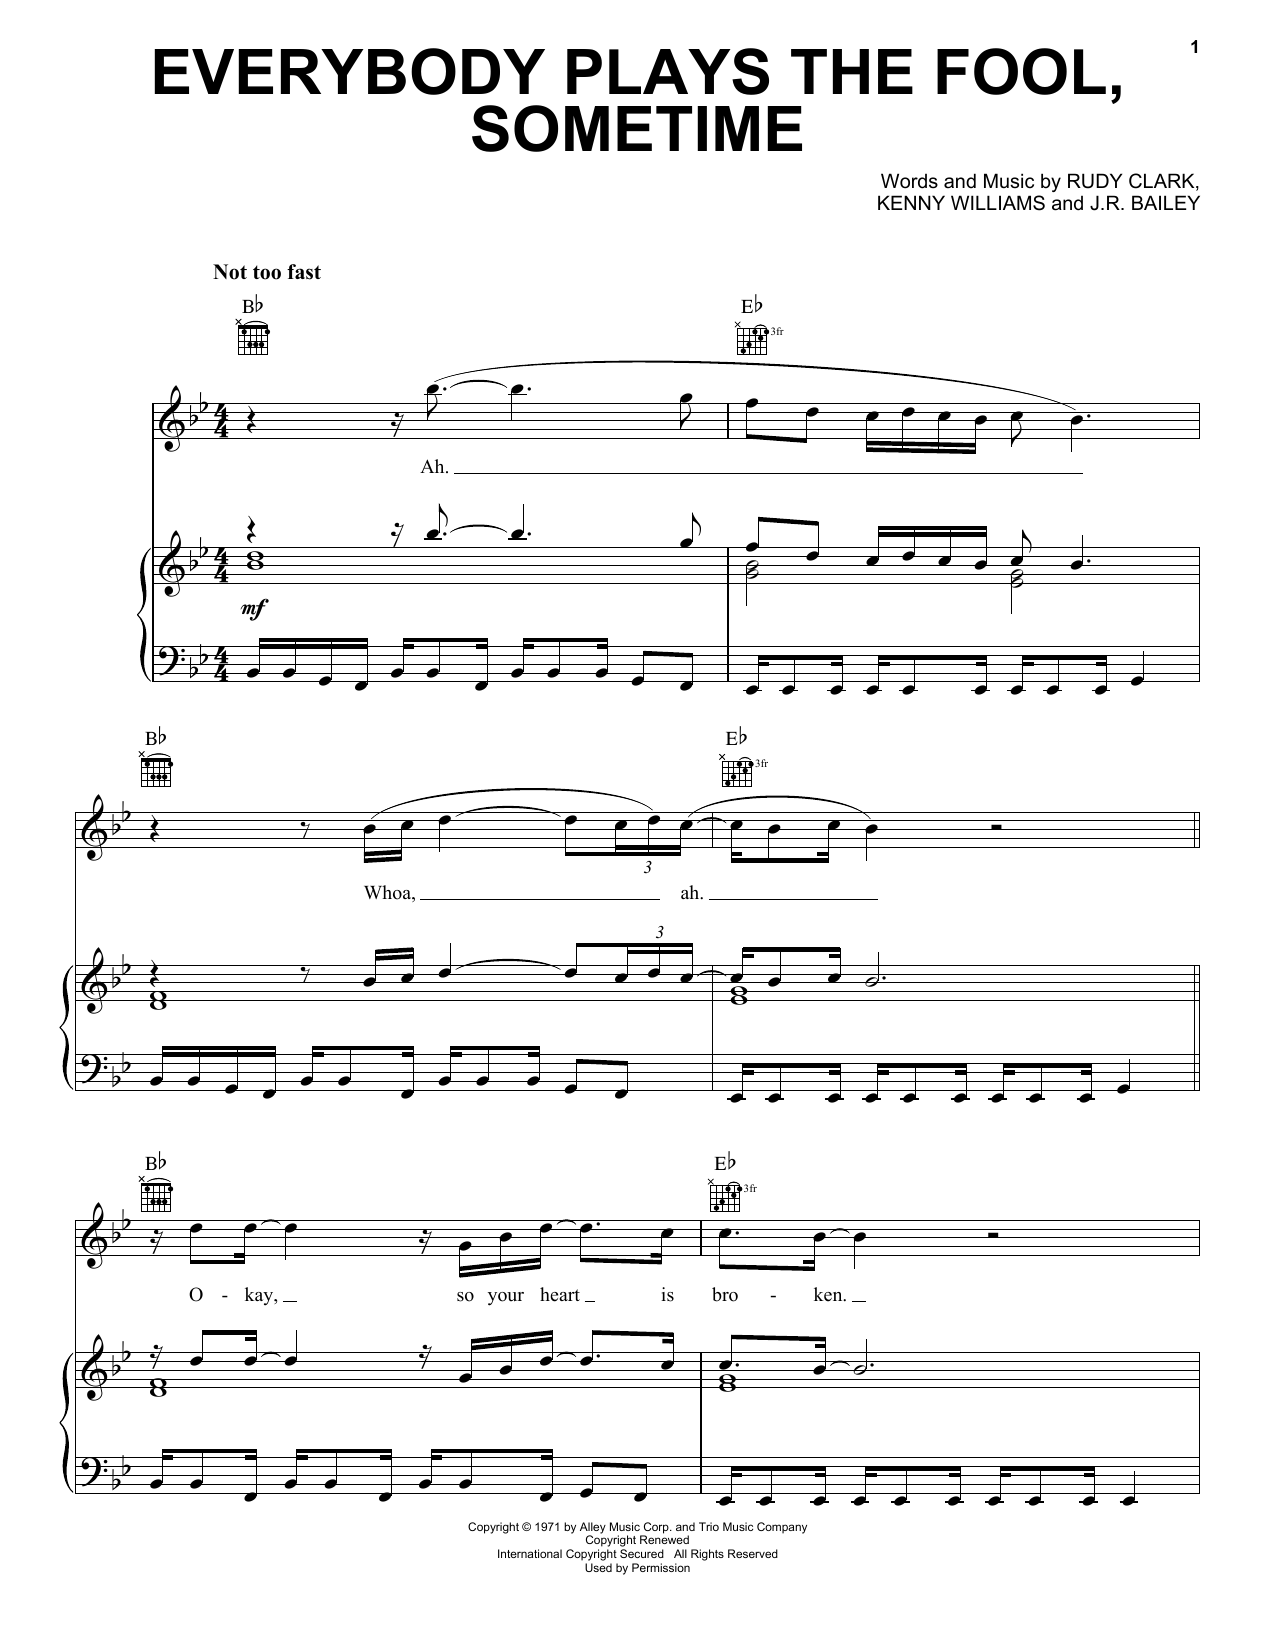 The Main Ingredient Everybody Plays The Fool, Sometime sheet music notes and chords. Download Printable PDF.